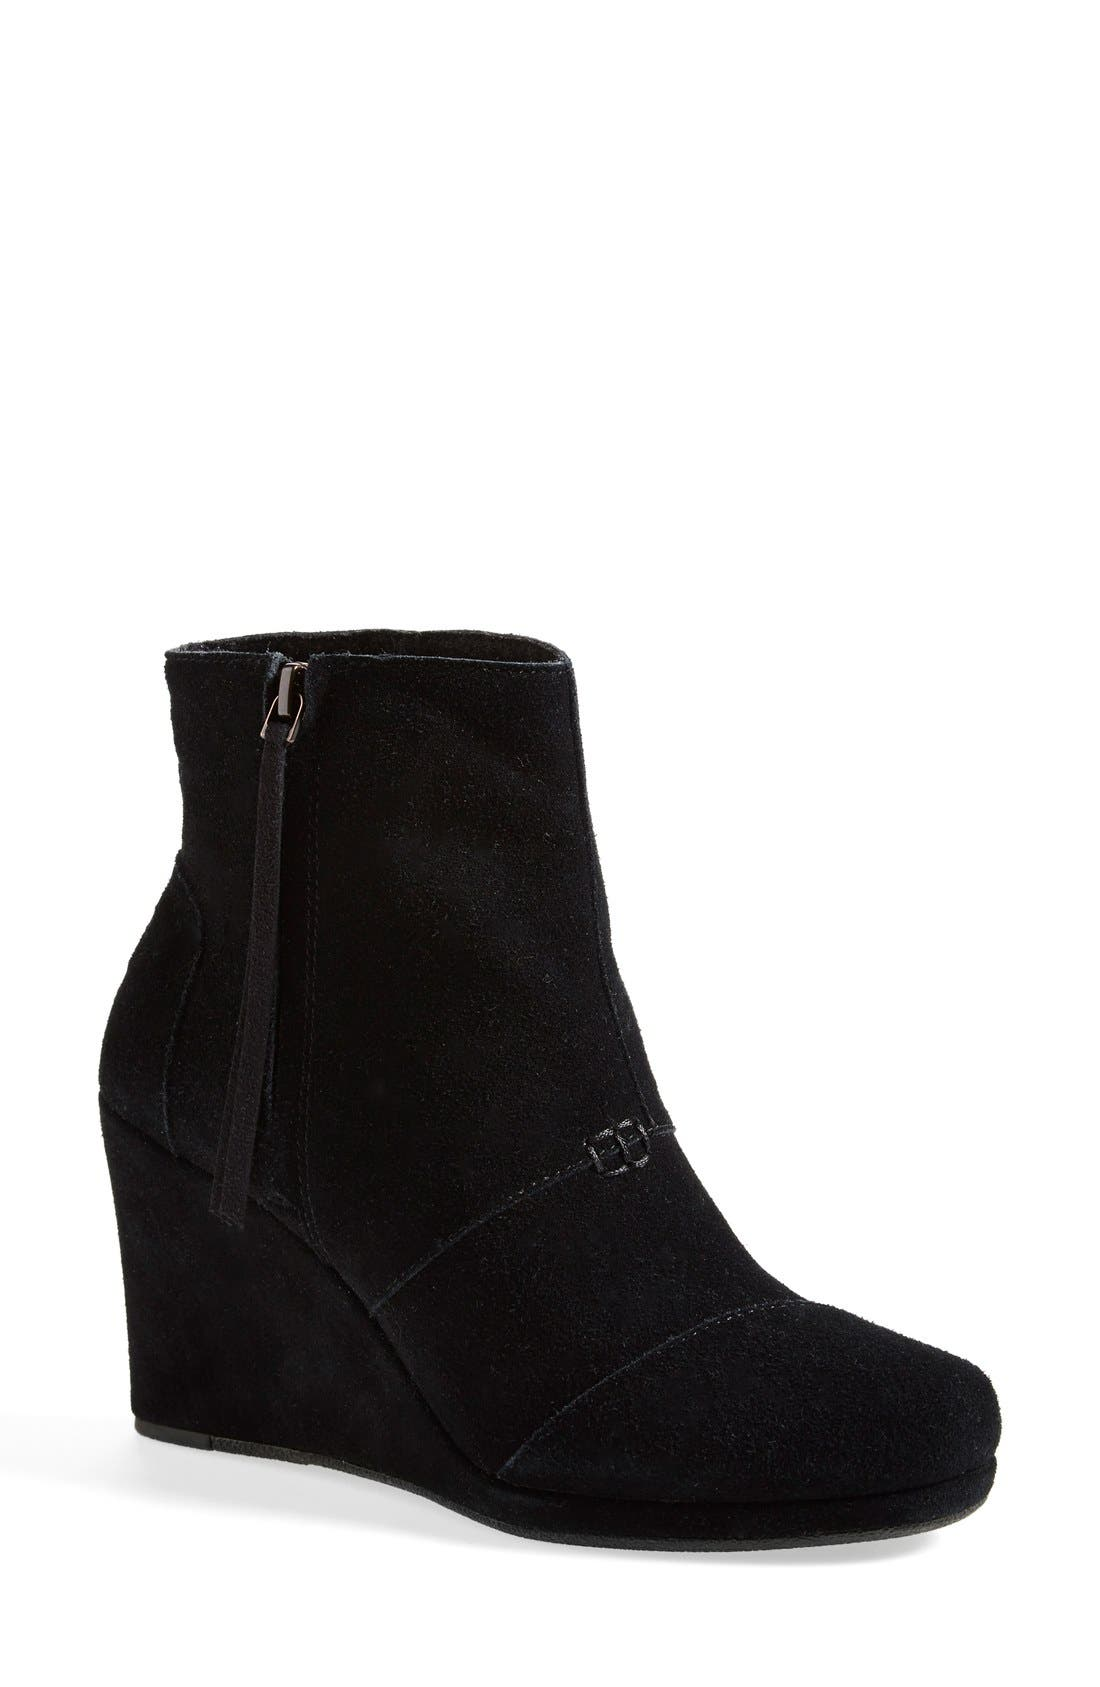 Main Image - TOMS 'Desert' Wedge High Bootie (Women)